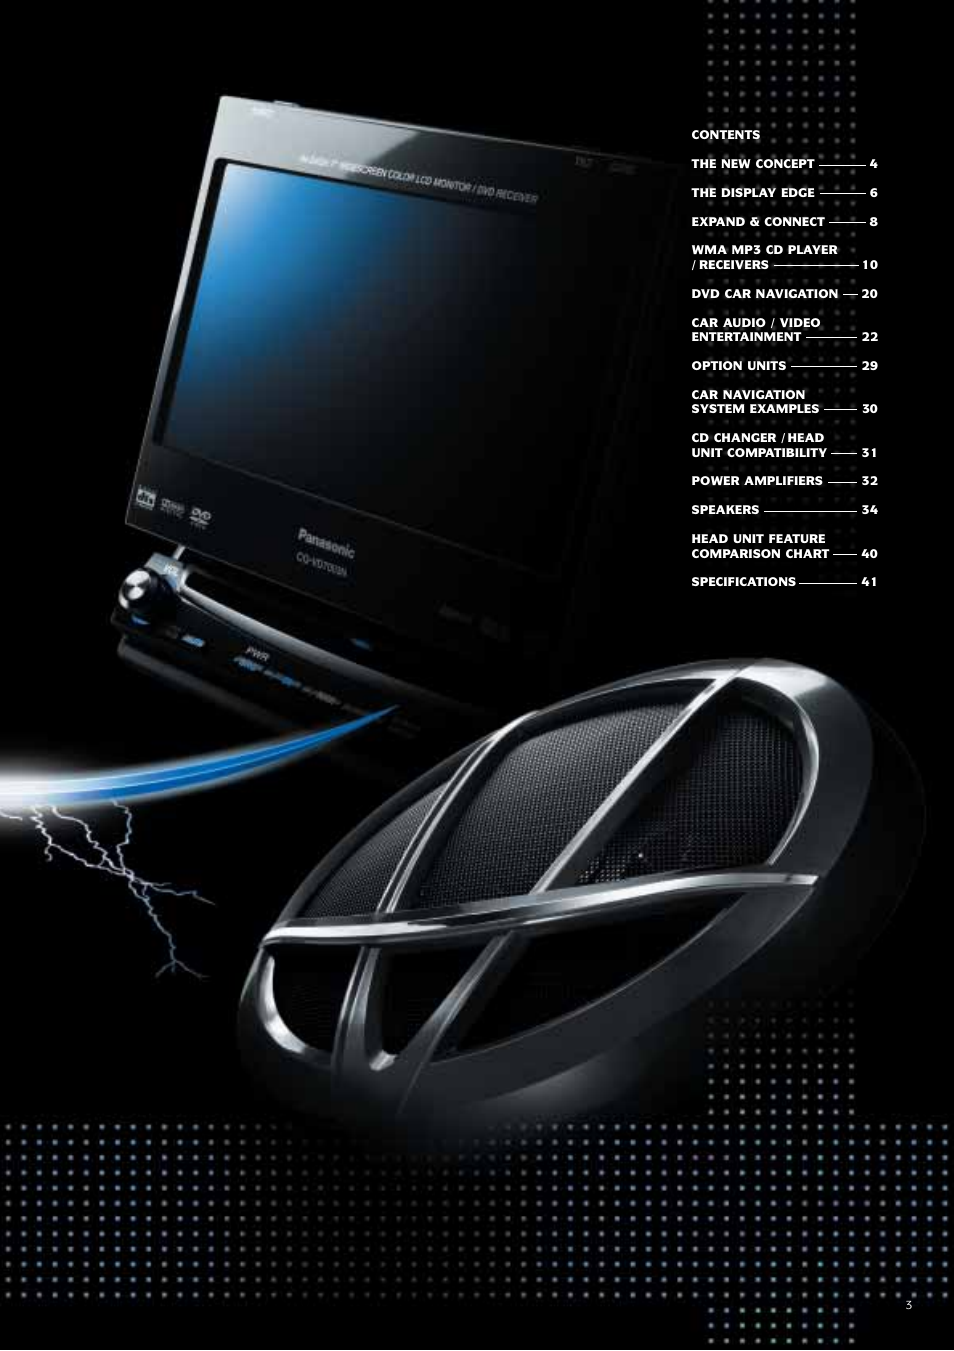 Panasonic Car Audio & DVD Car Navigation System User Manual | Page 3 / 44